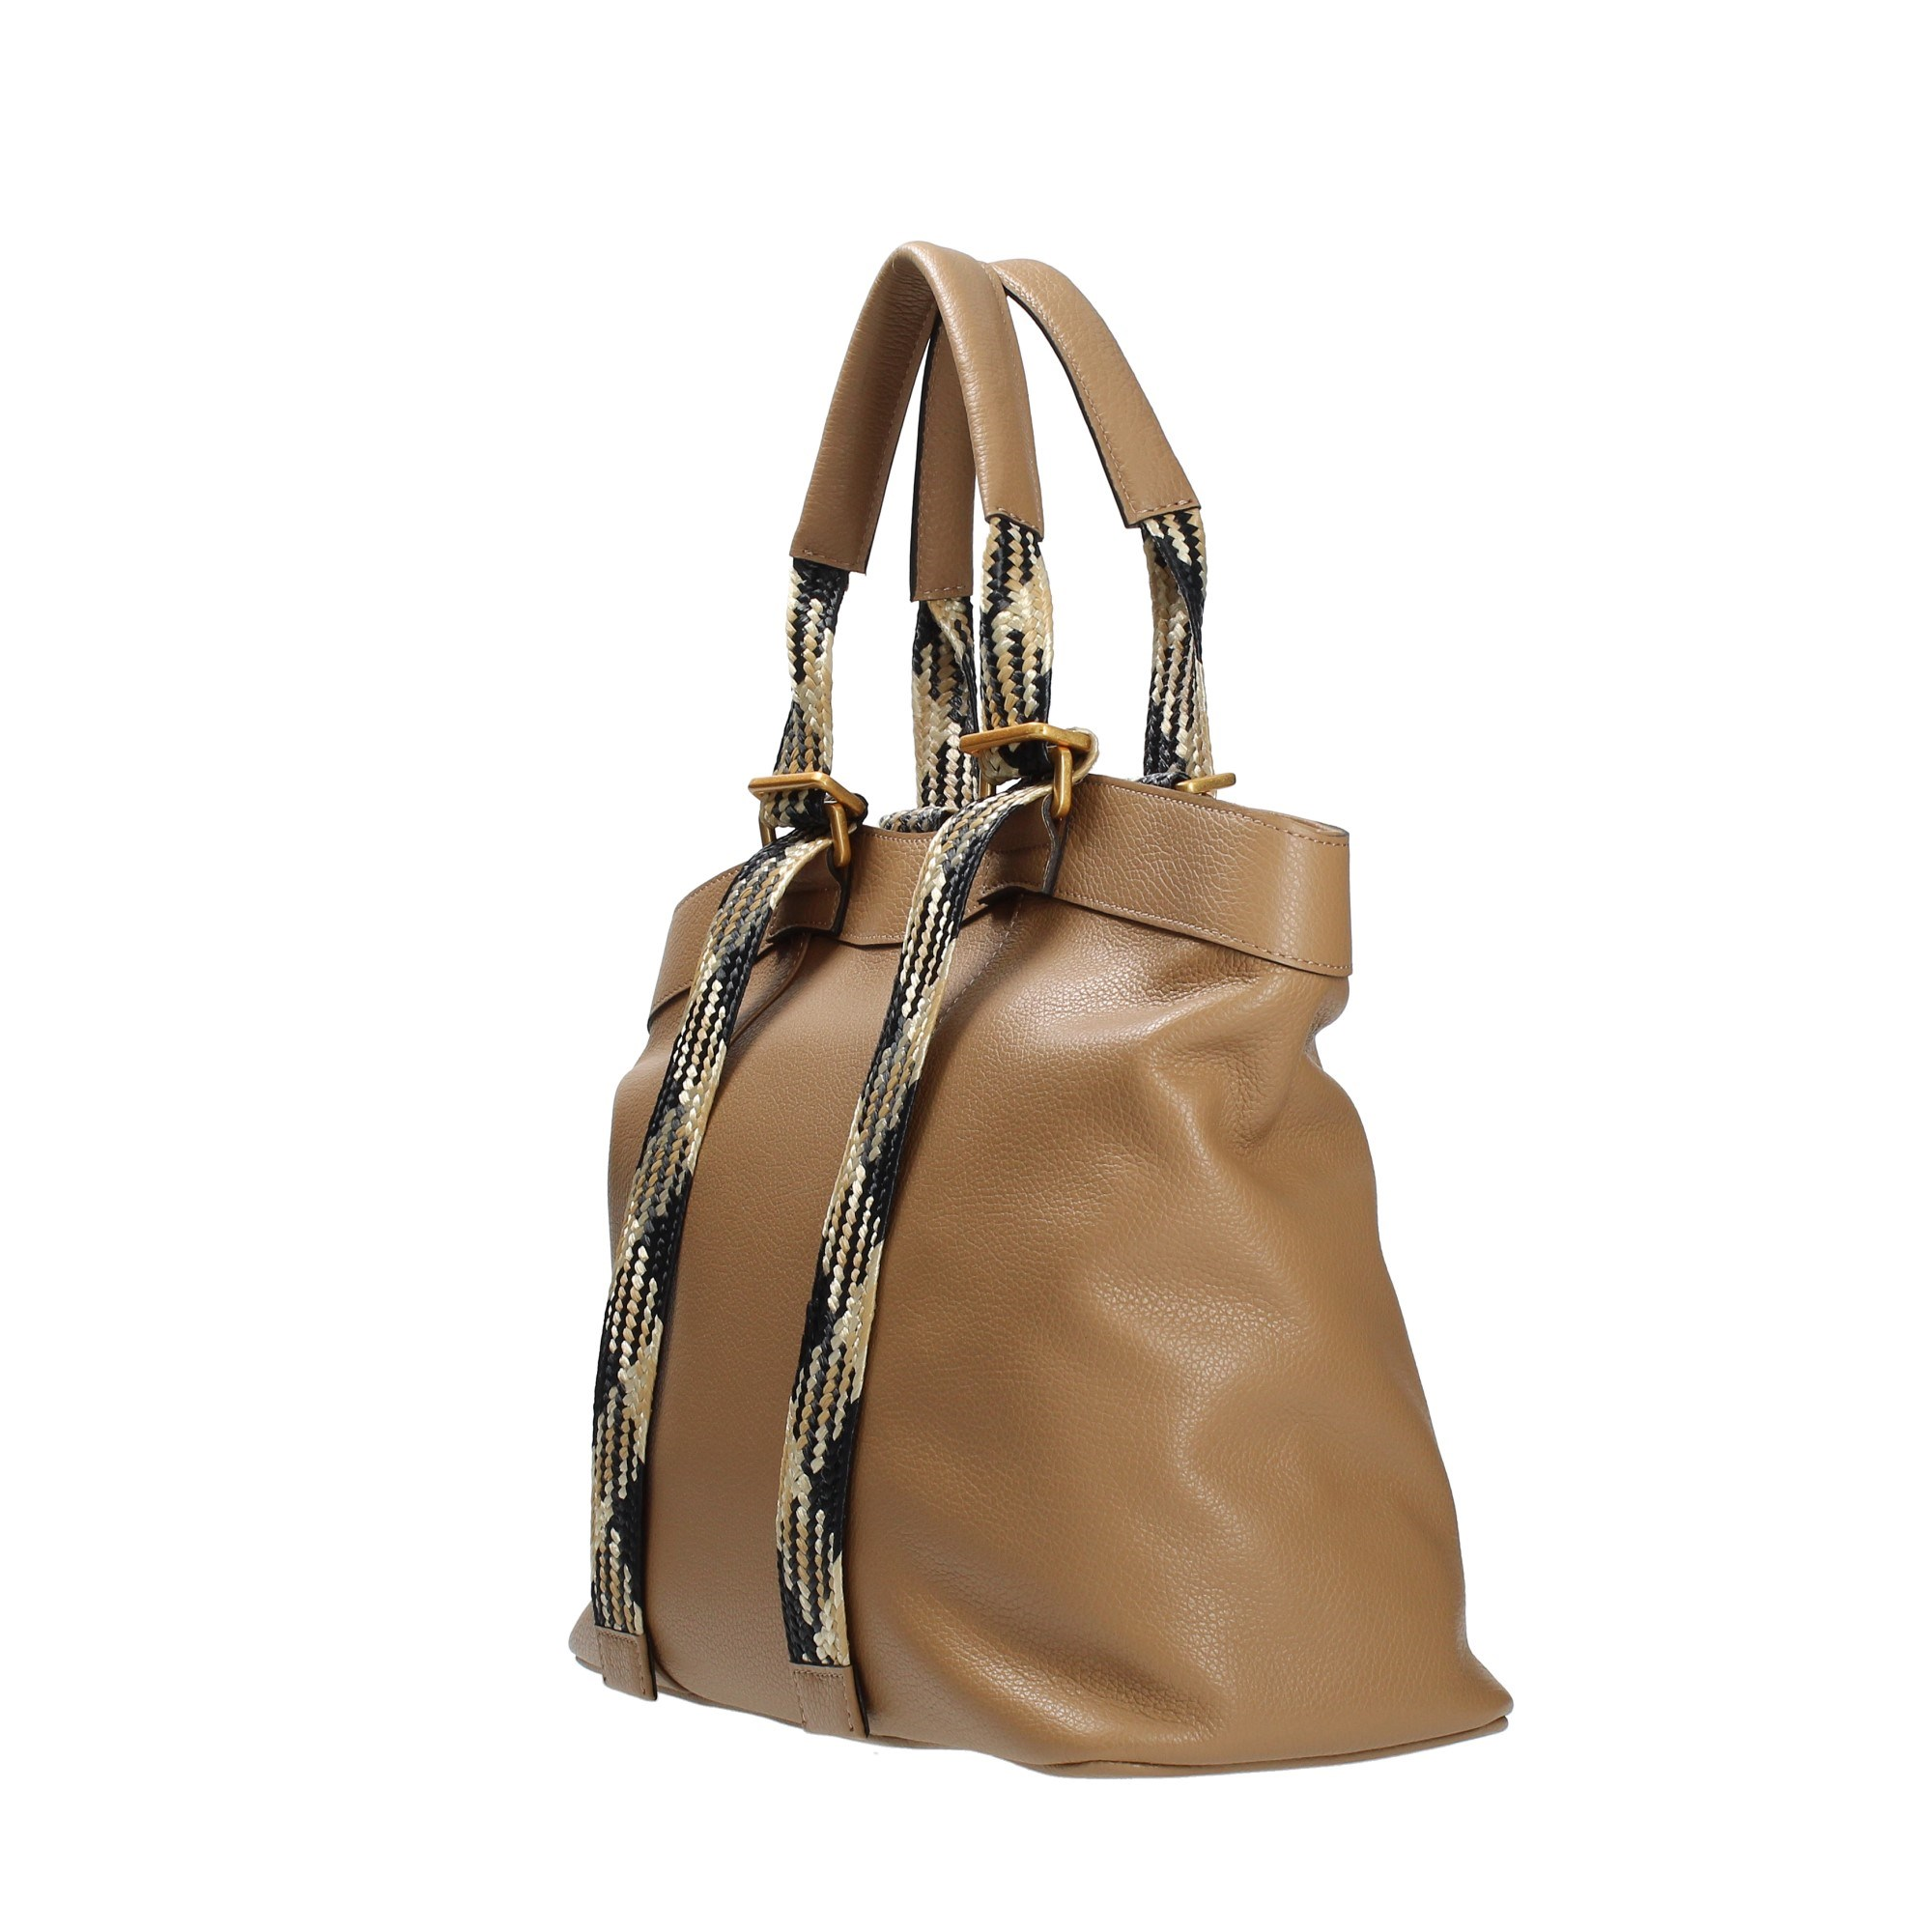 Gianni Chiarini Accessories Women Shoulder Bags Leather BS8520 GRN-NAINT